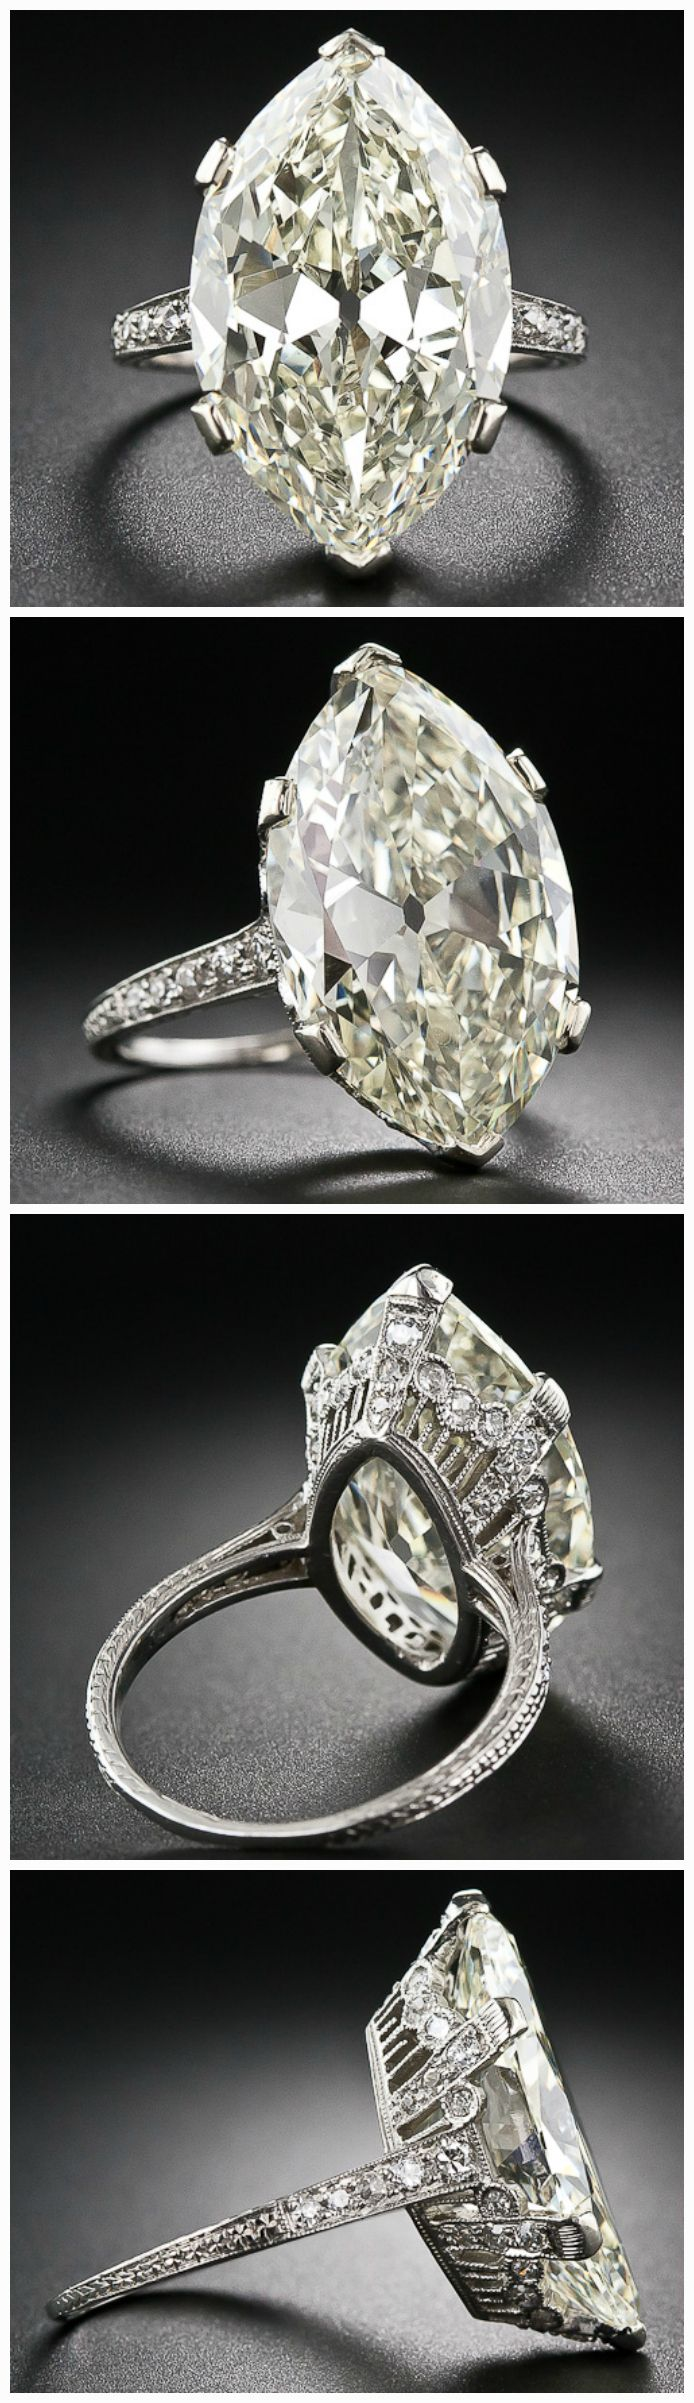 Ode to a moval diamond ring: Lang Antiques' 9.55 carat beauty. .Diamonds in the Library